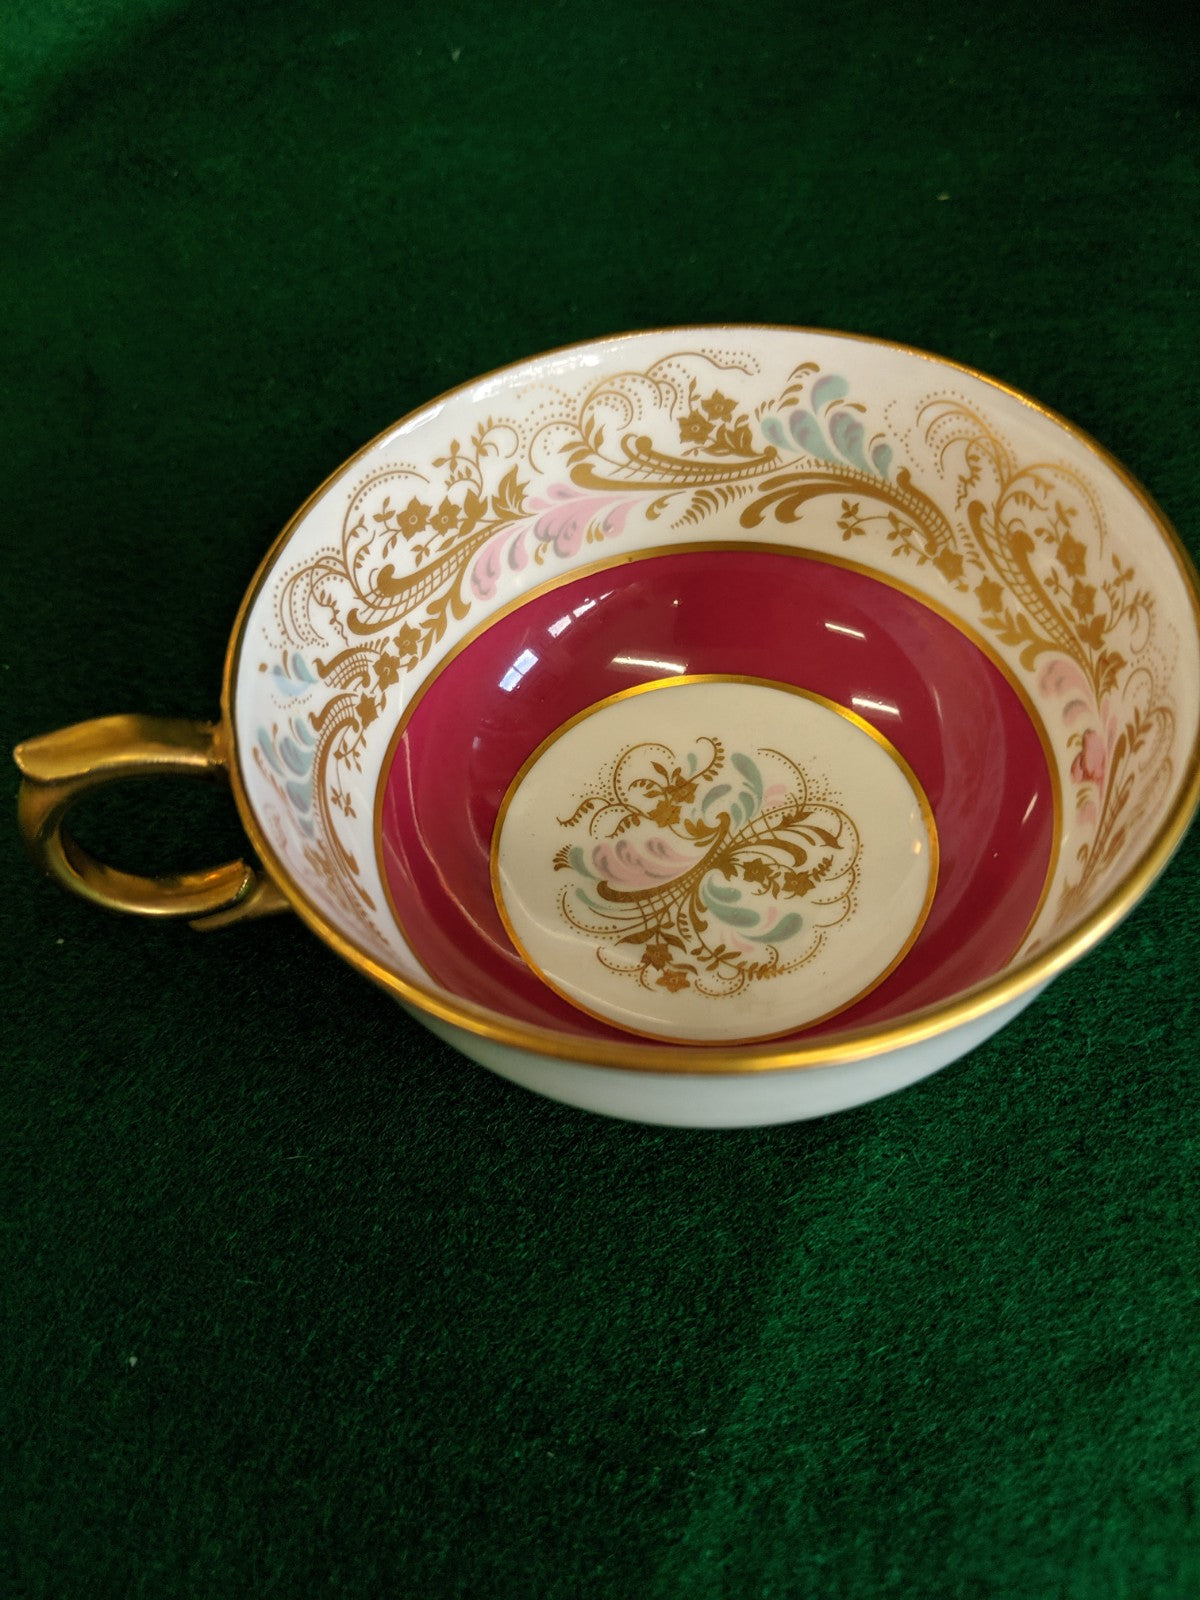 Vintage Windsor tea cup and saucer pattern 255/60